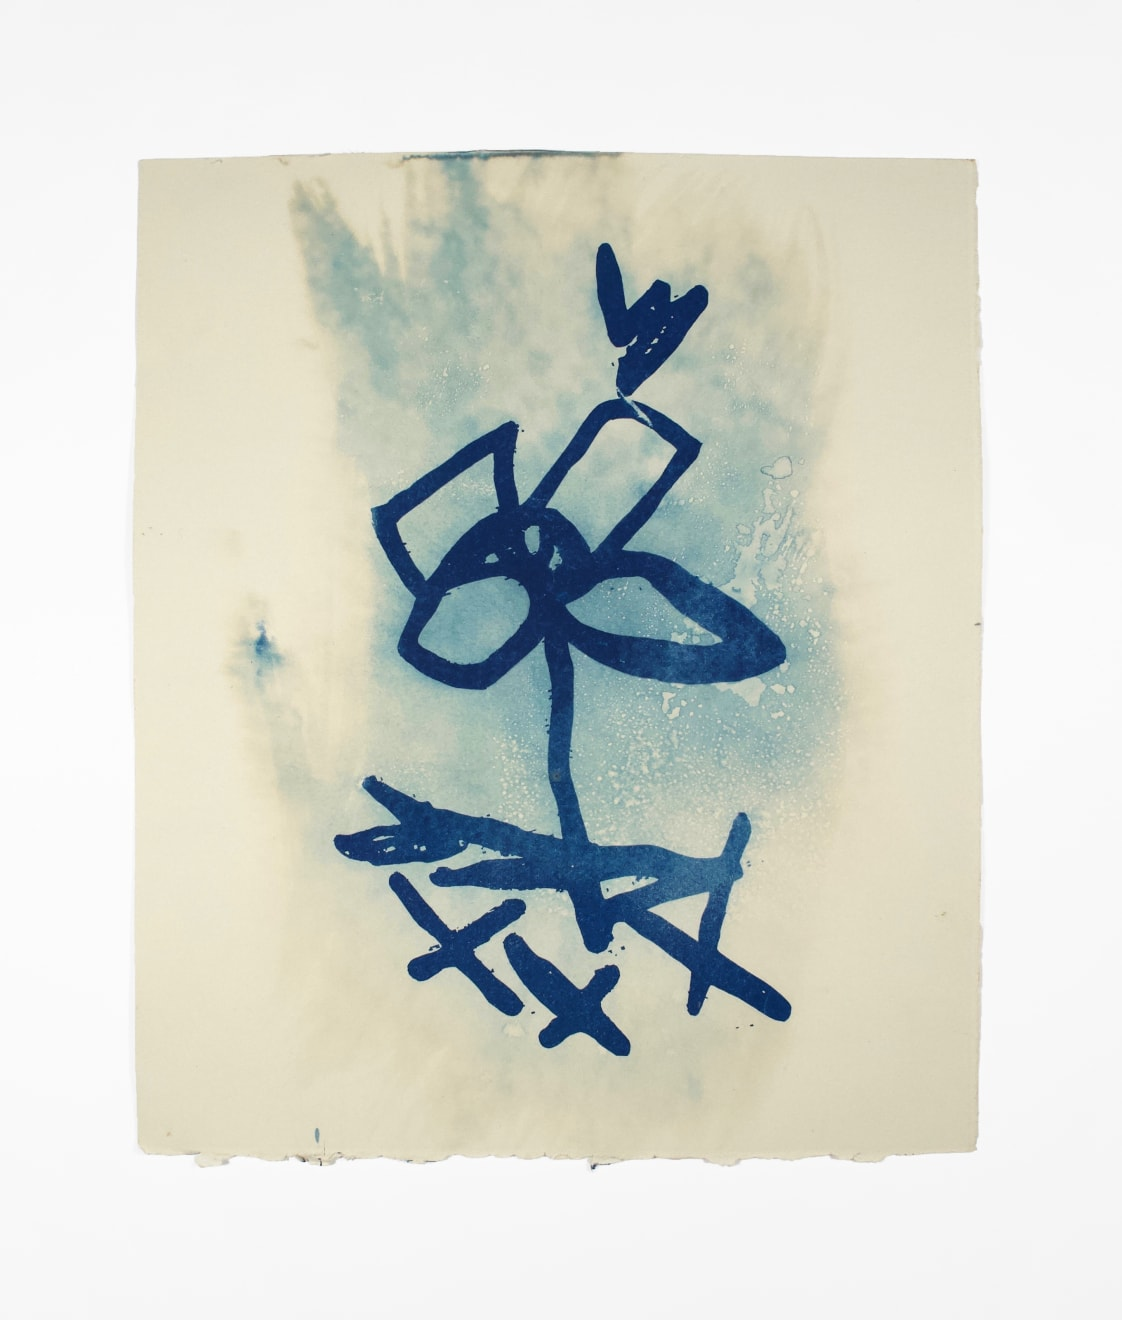 Dario Robleto Azures of the Natural World (Bolan), 2014 cyanotype, ghost image of an original drawing by Marc Bolan, sunlight, ocean water, watercolor paper 13 1/8 x 11 in (33.3 x 27.9 cm) DR 372 SOLD